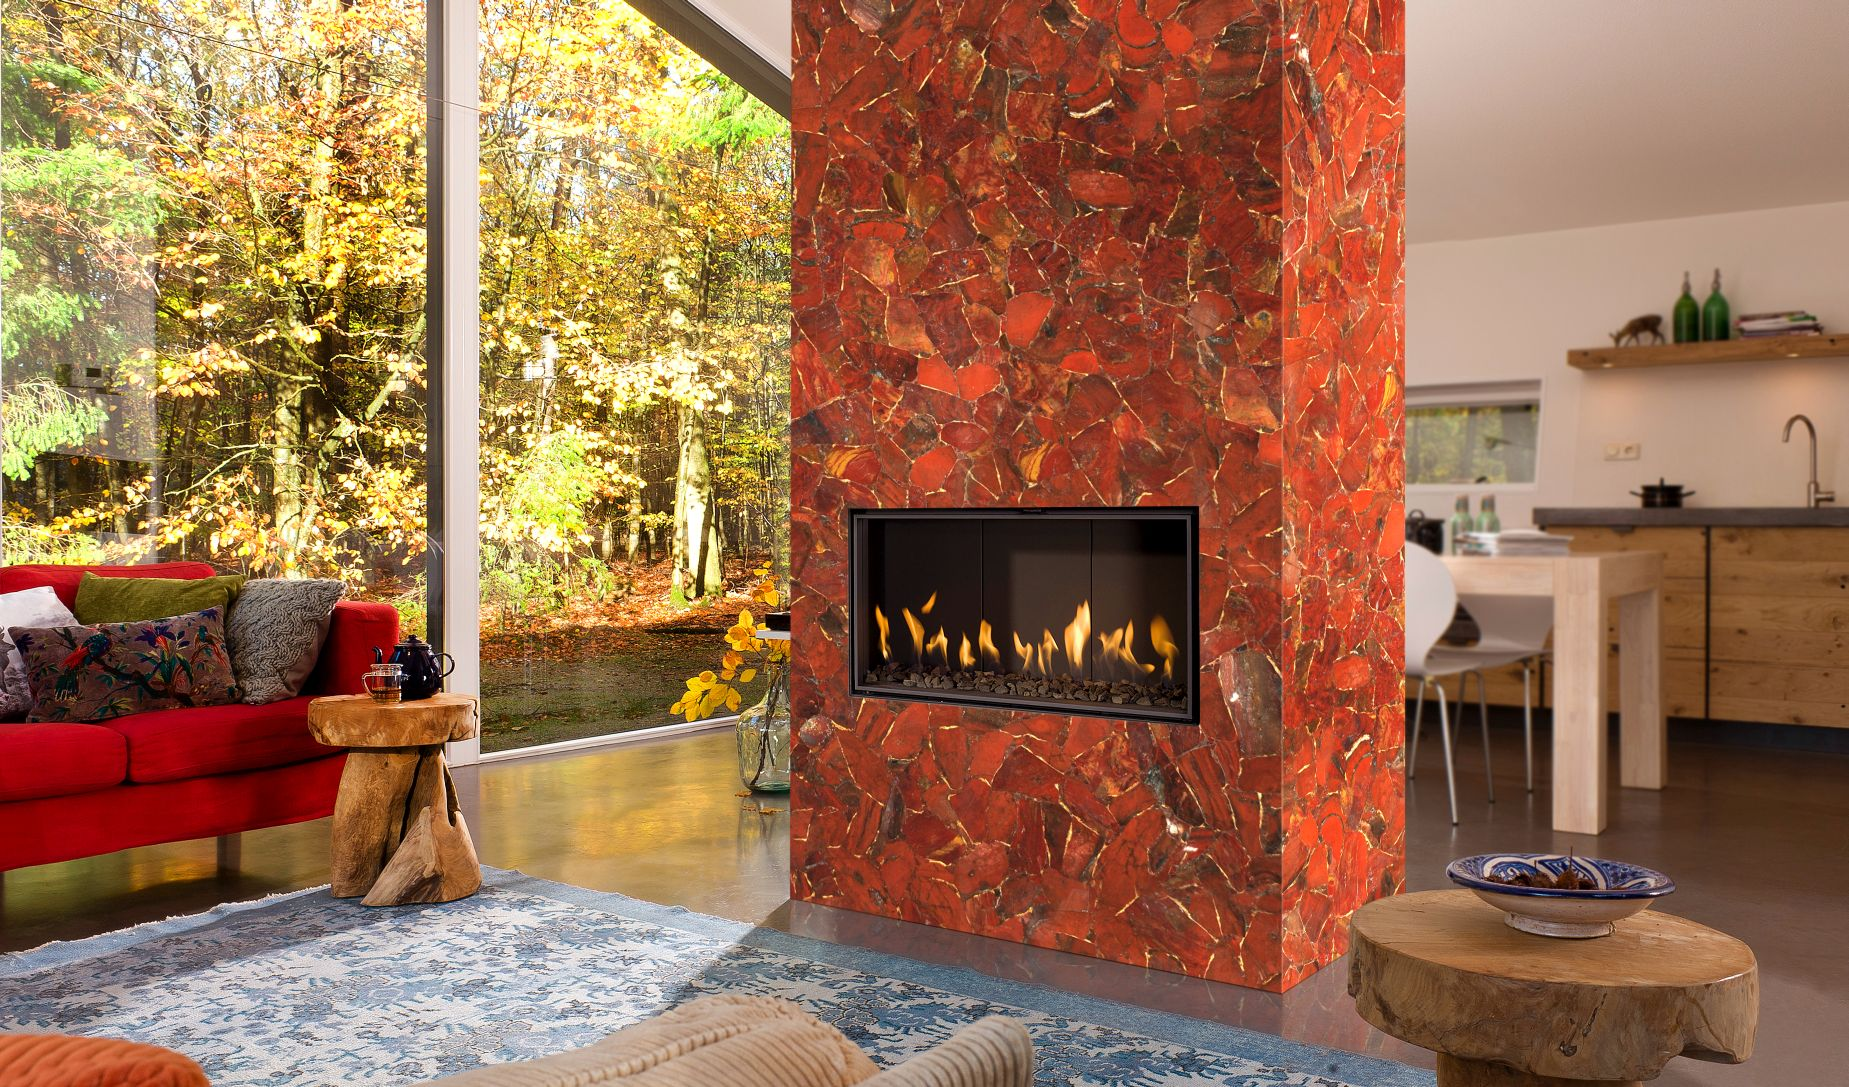 jasper red with gold fireplace